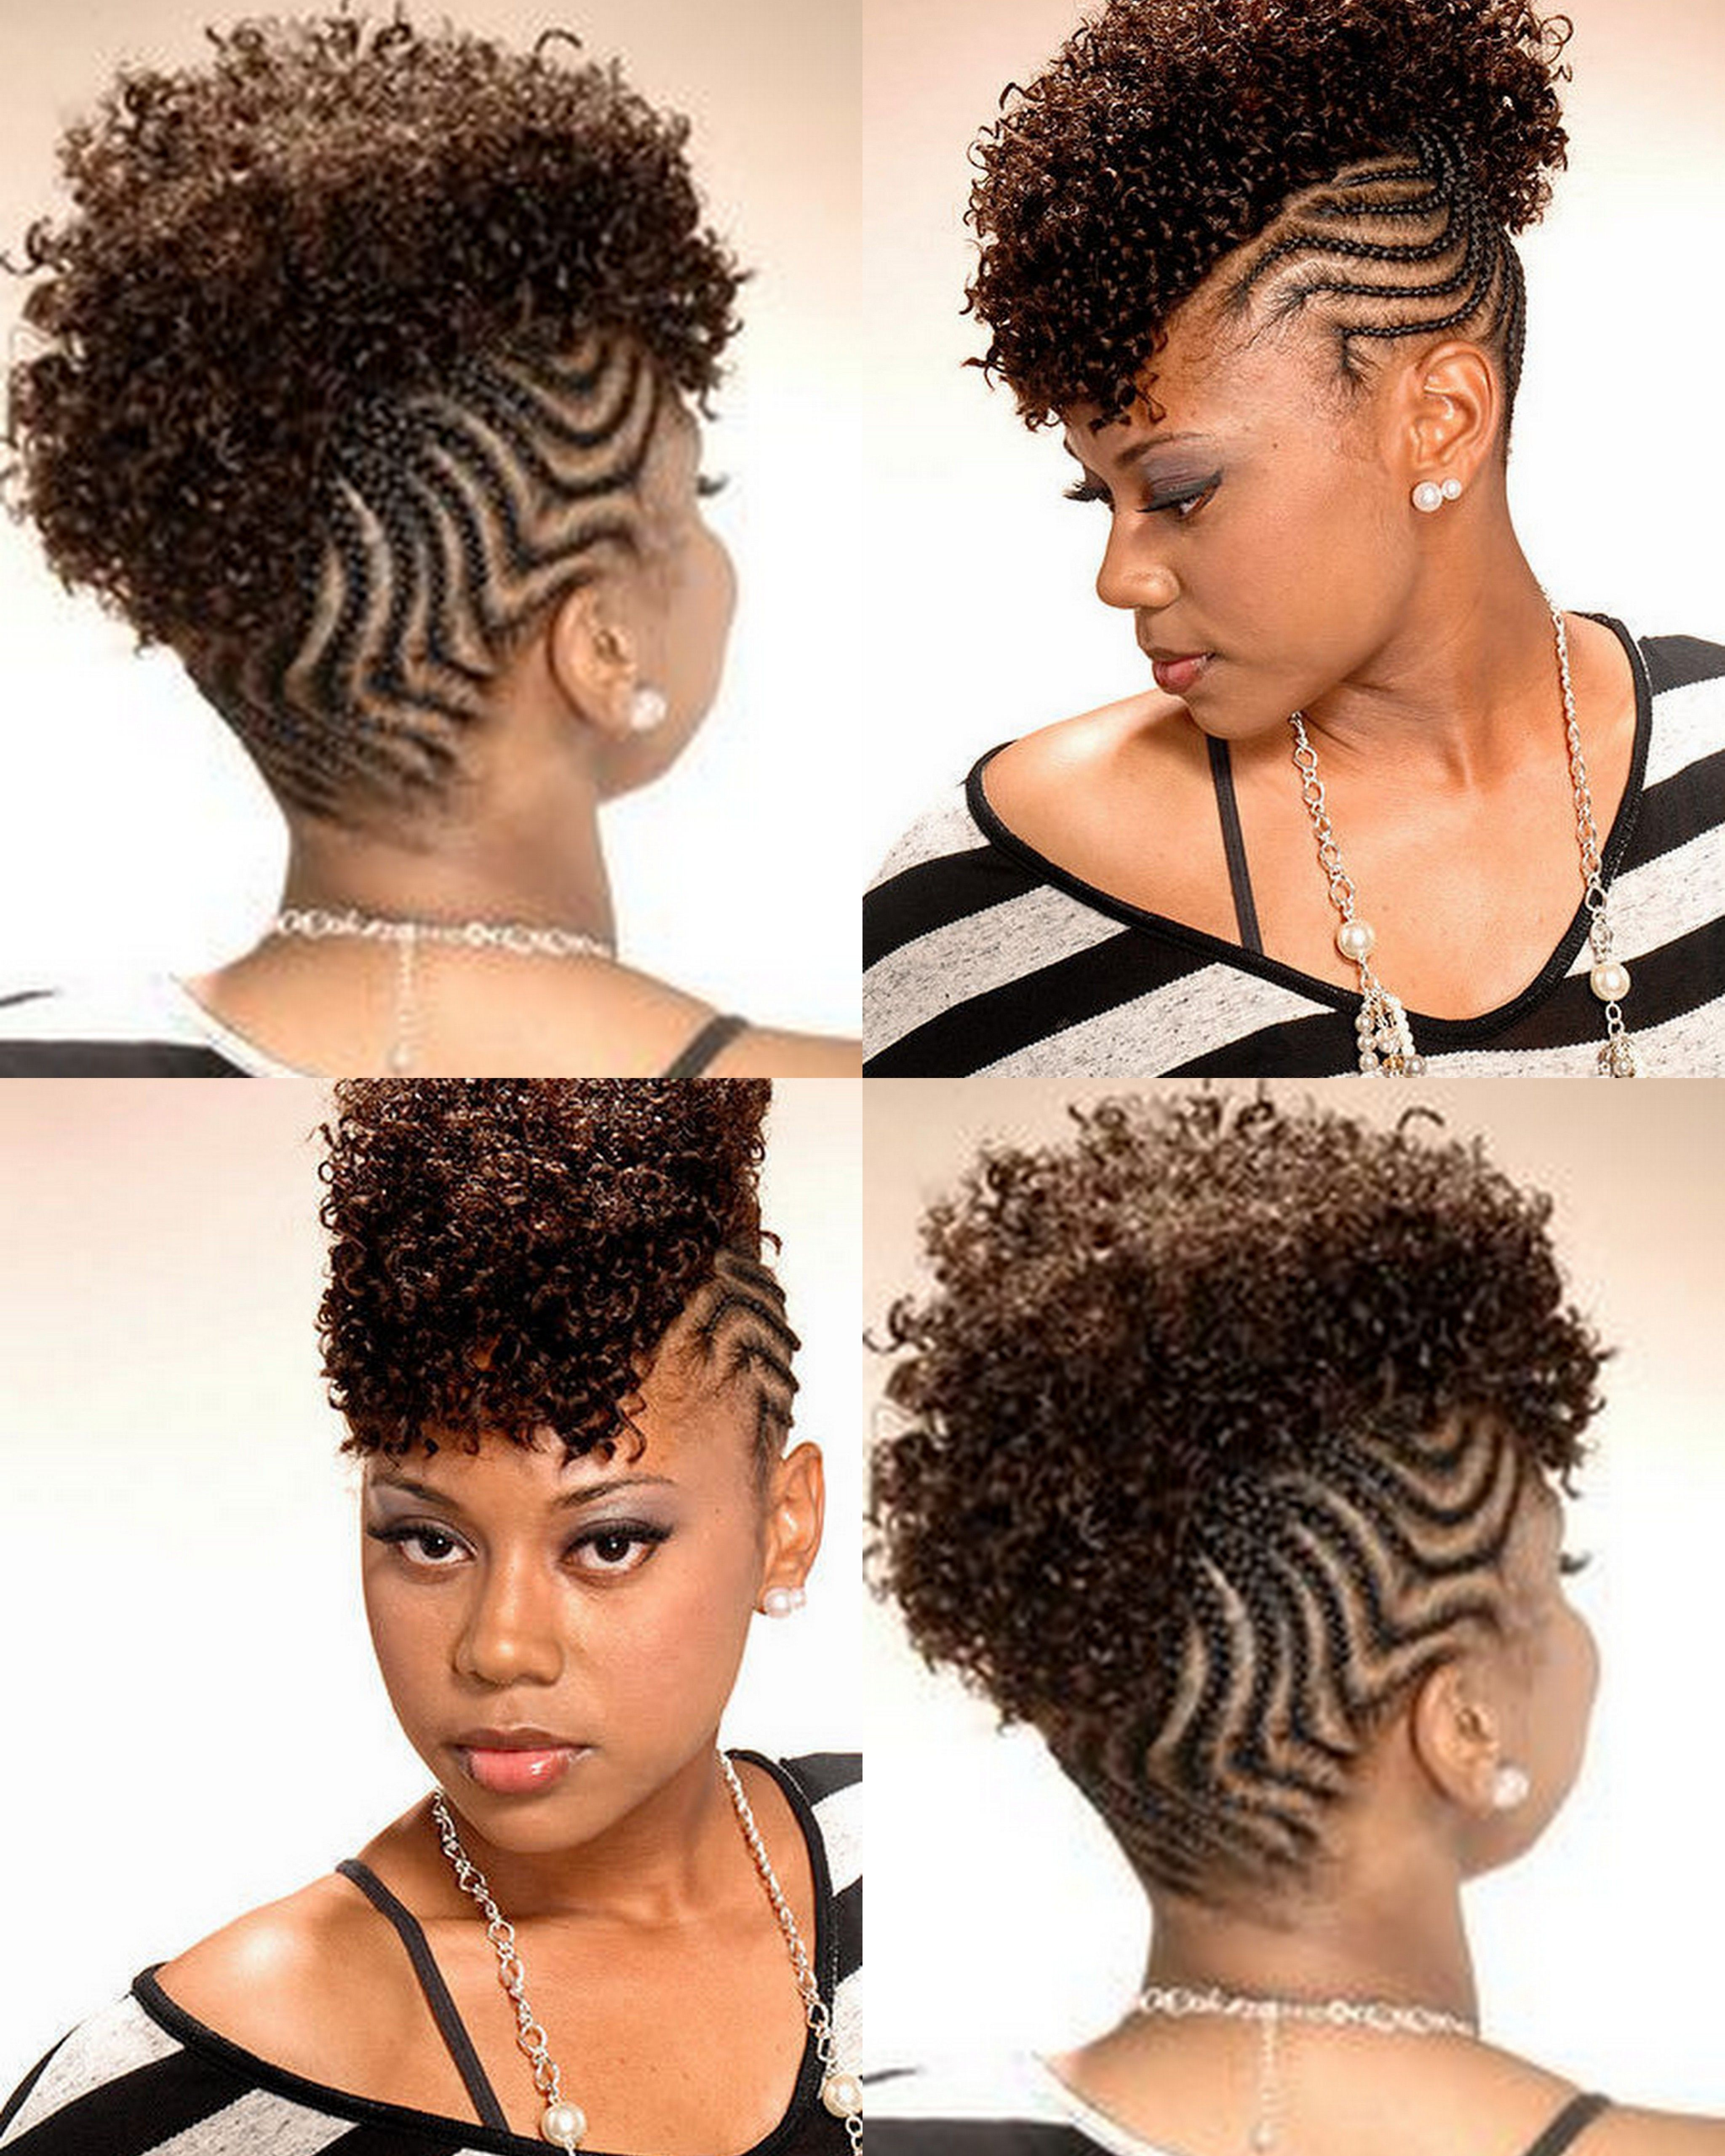 Princess Crown Braid e The Best Updated Version For Teenage